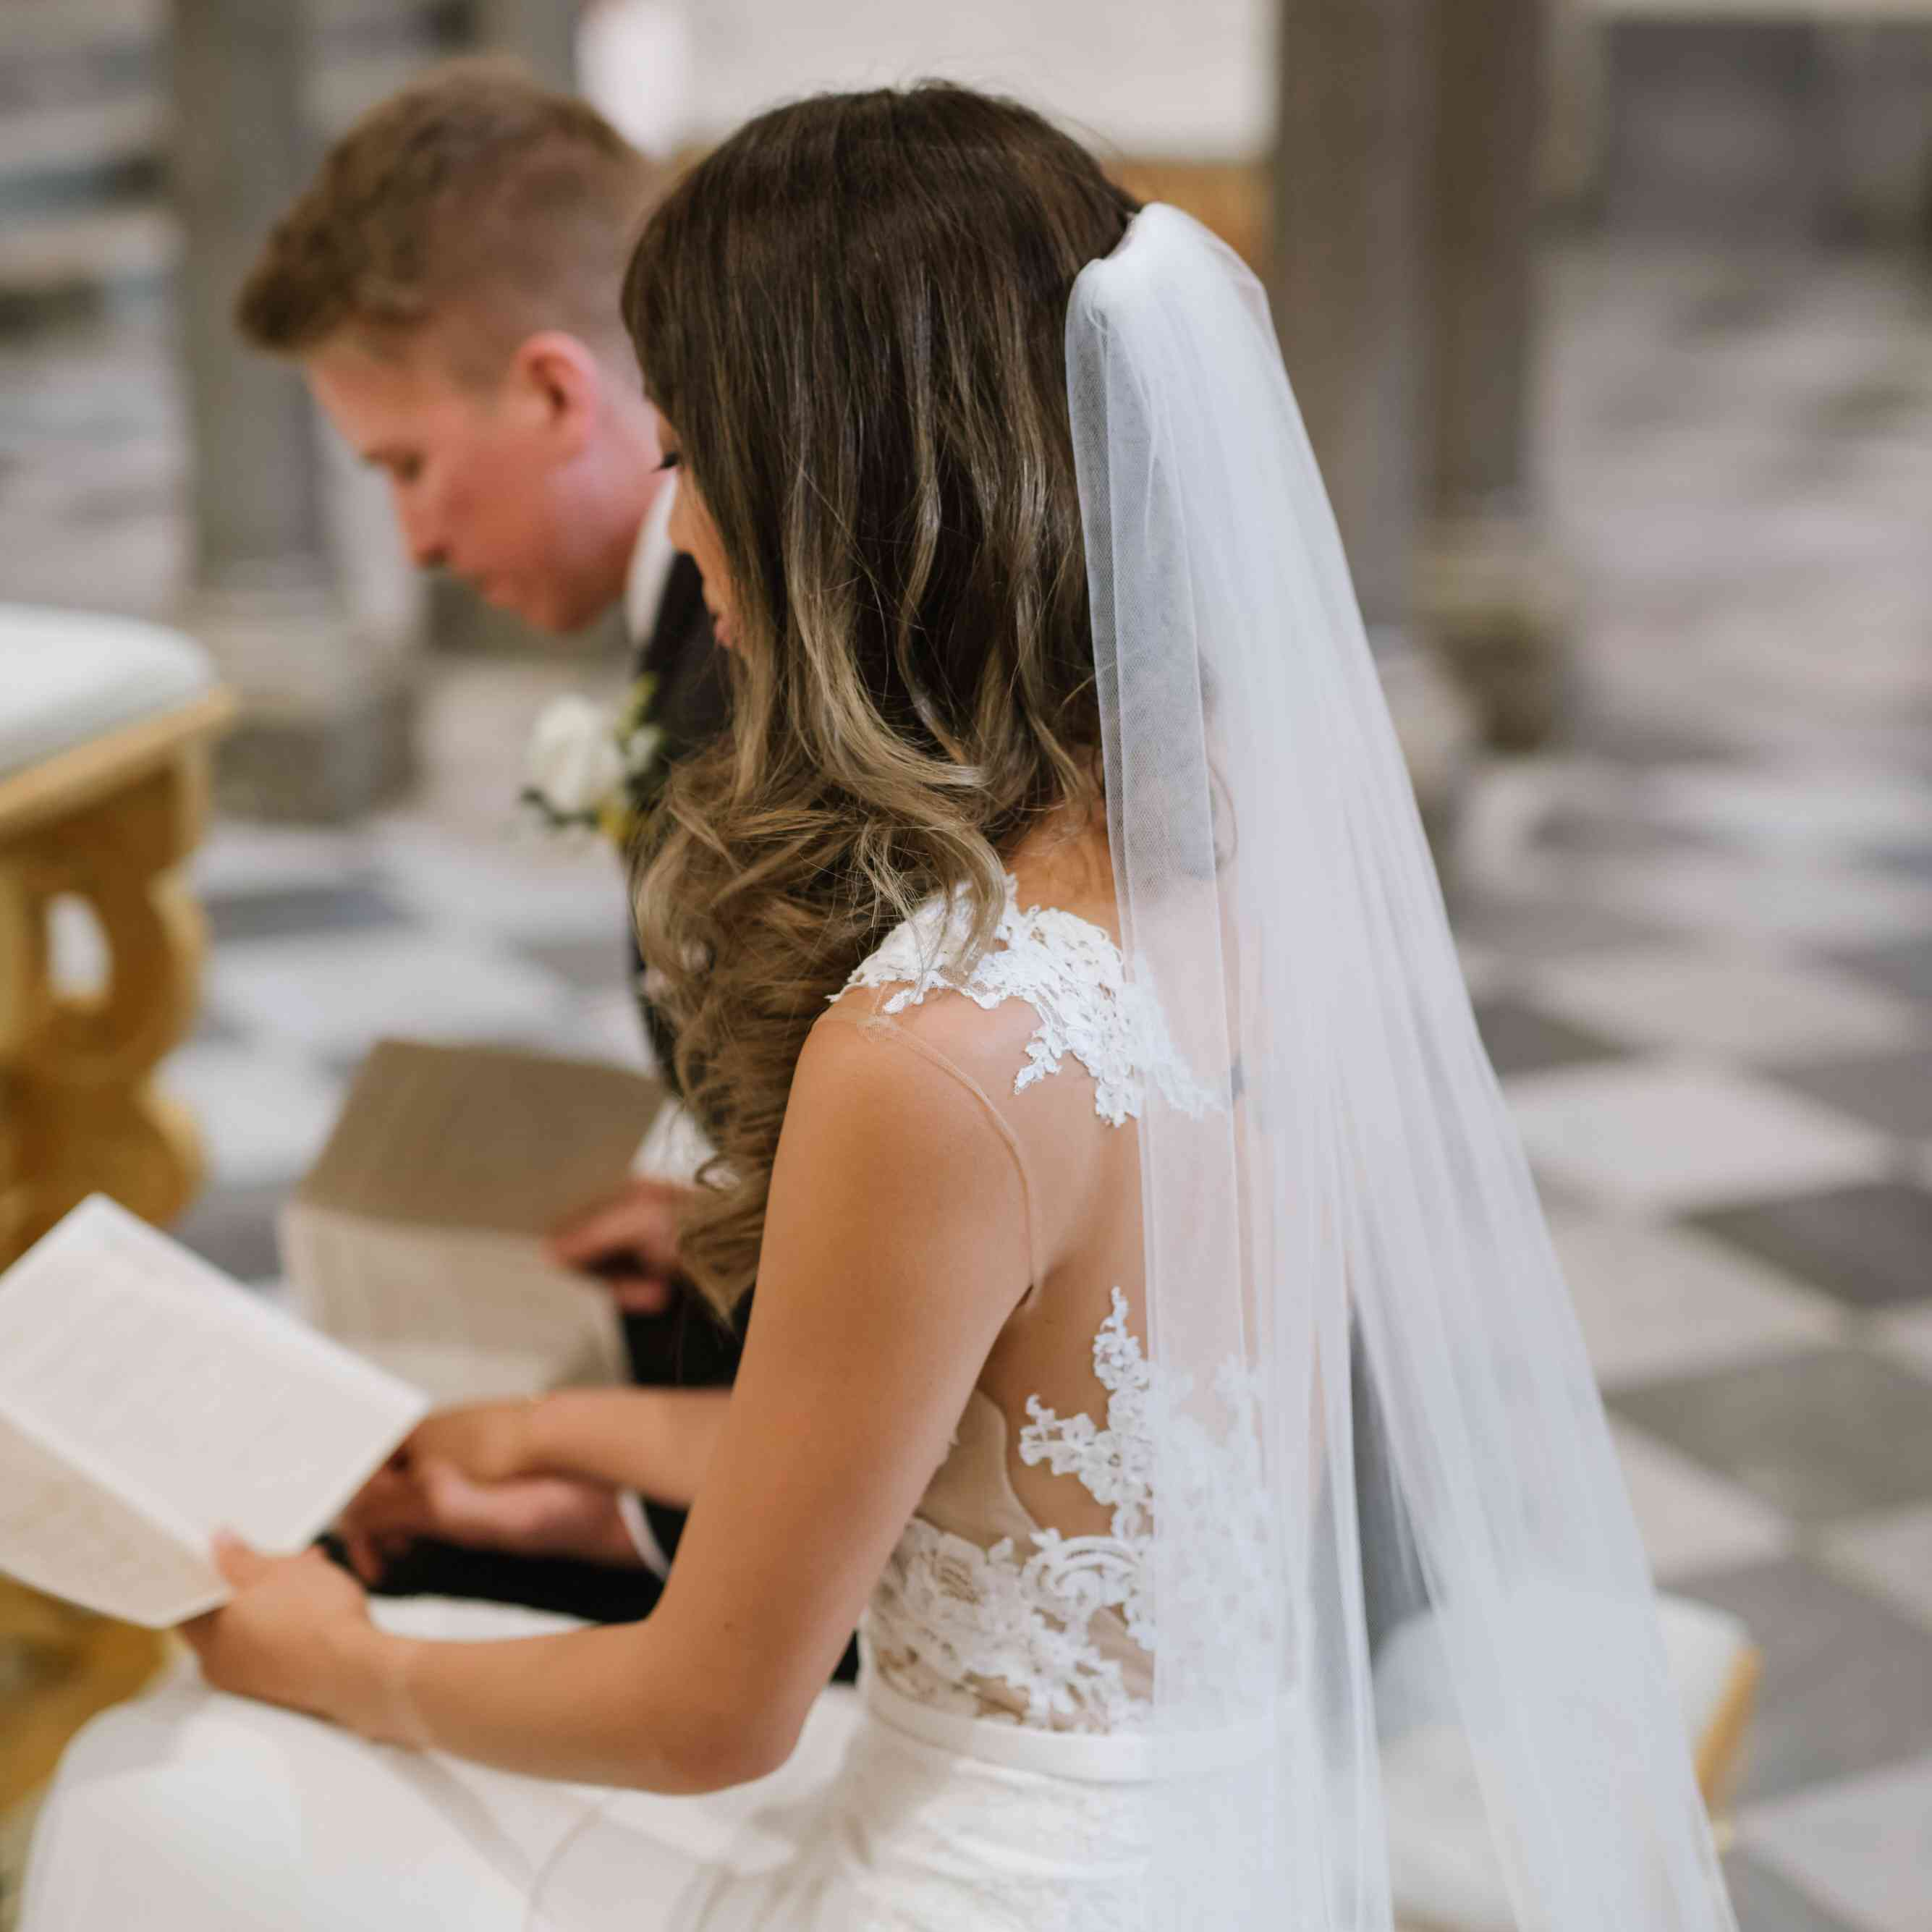 Bride reading pamphlet during ceremony